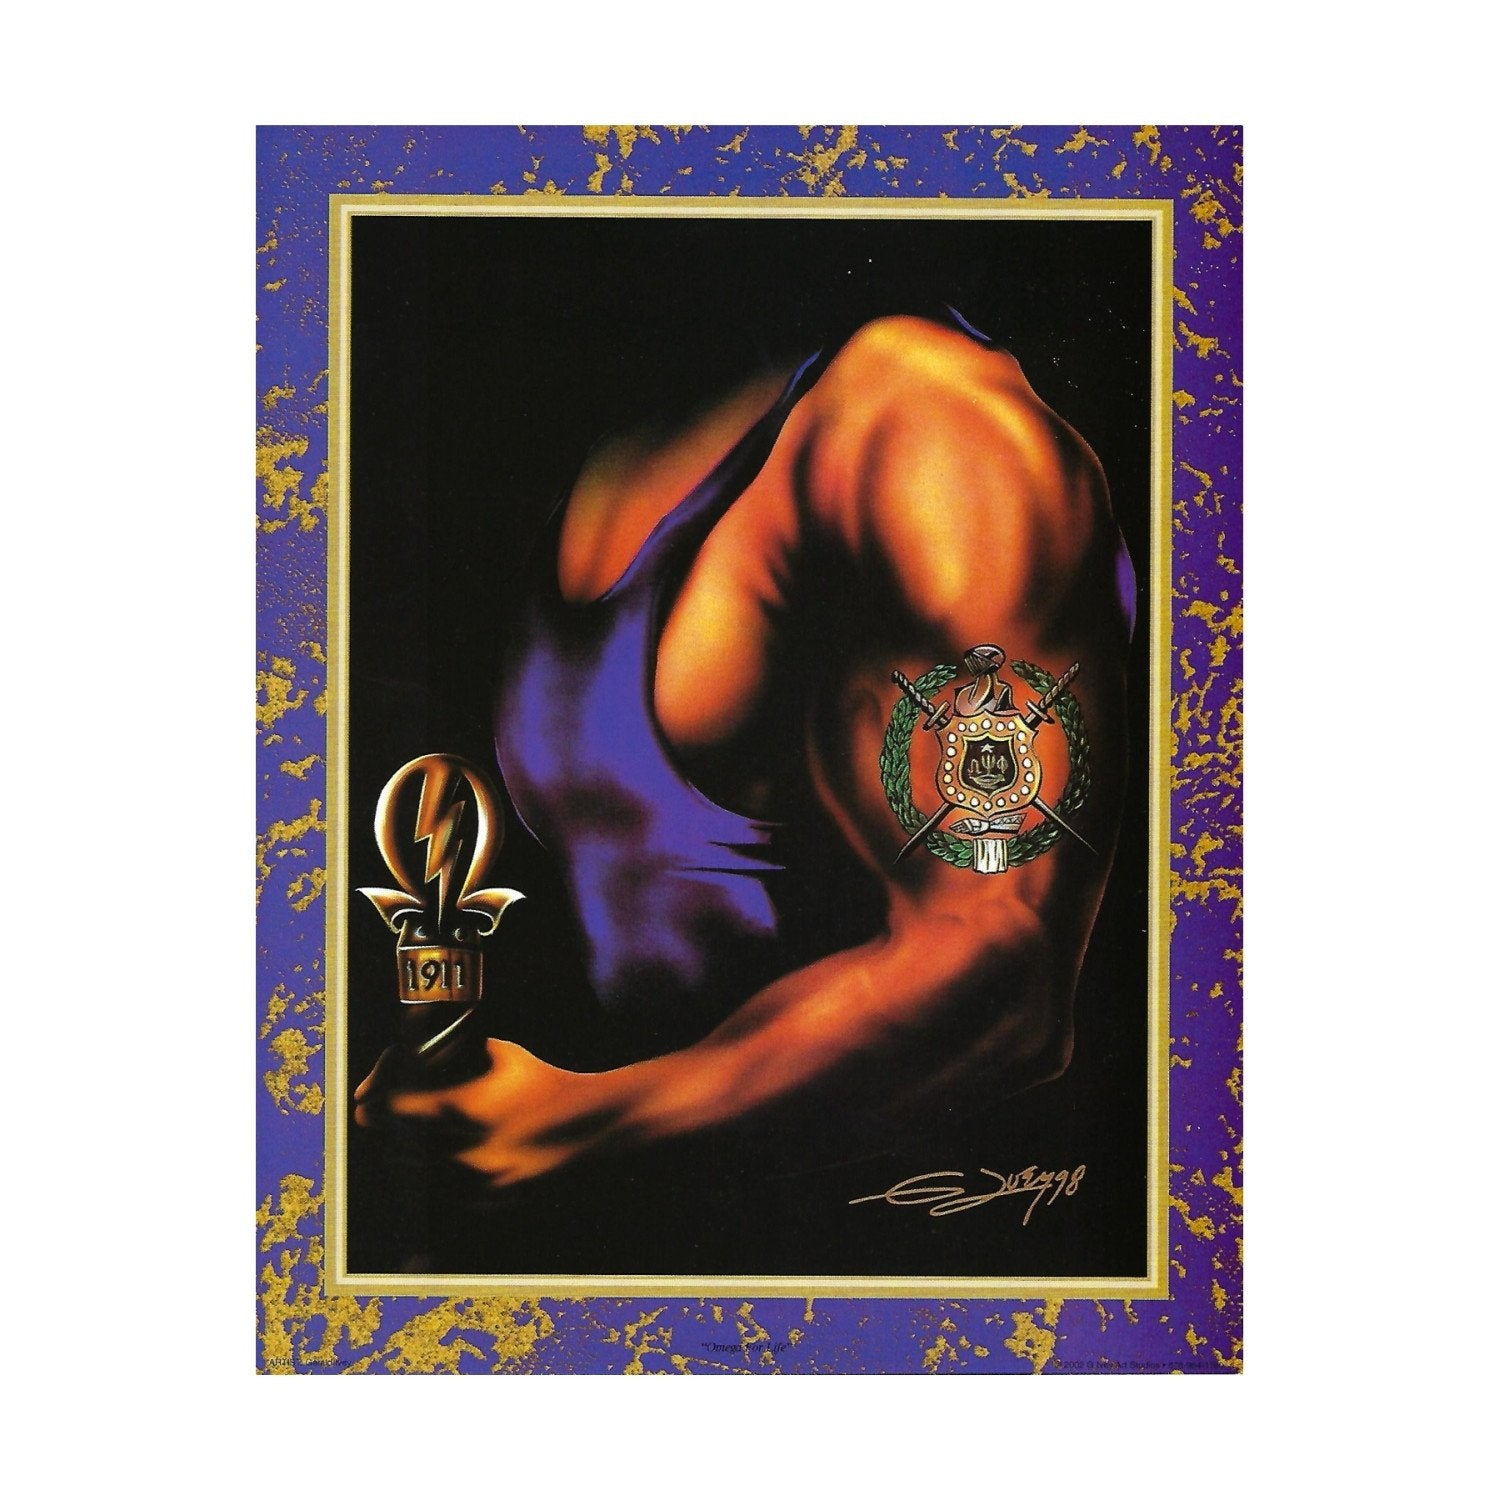 Omega for Life (Omega Psi Phi) by Gerald Ivey (Mini Print)